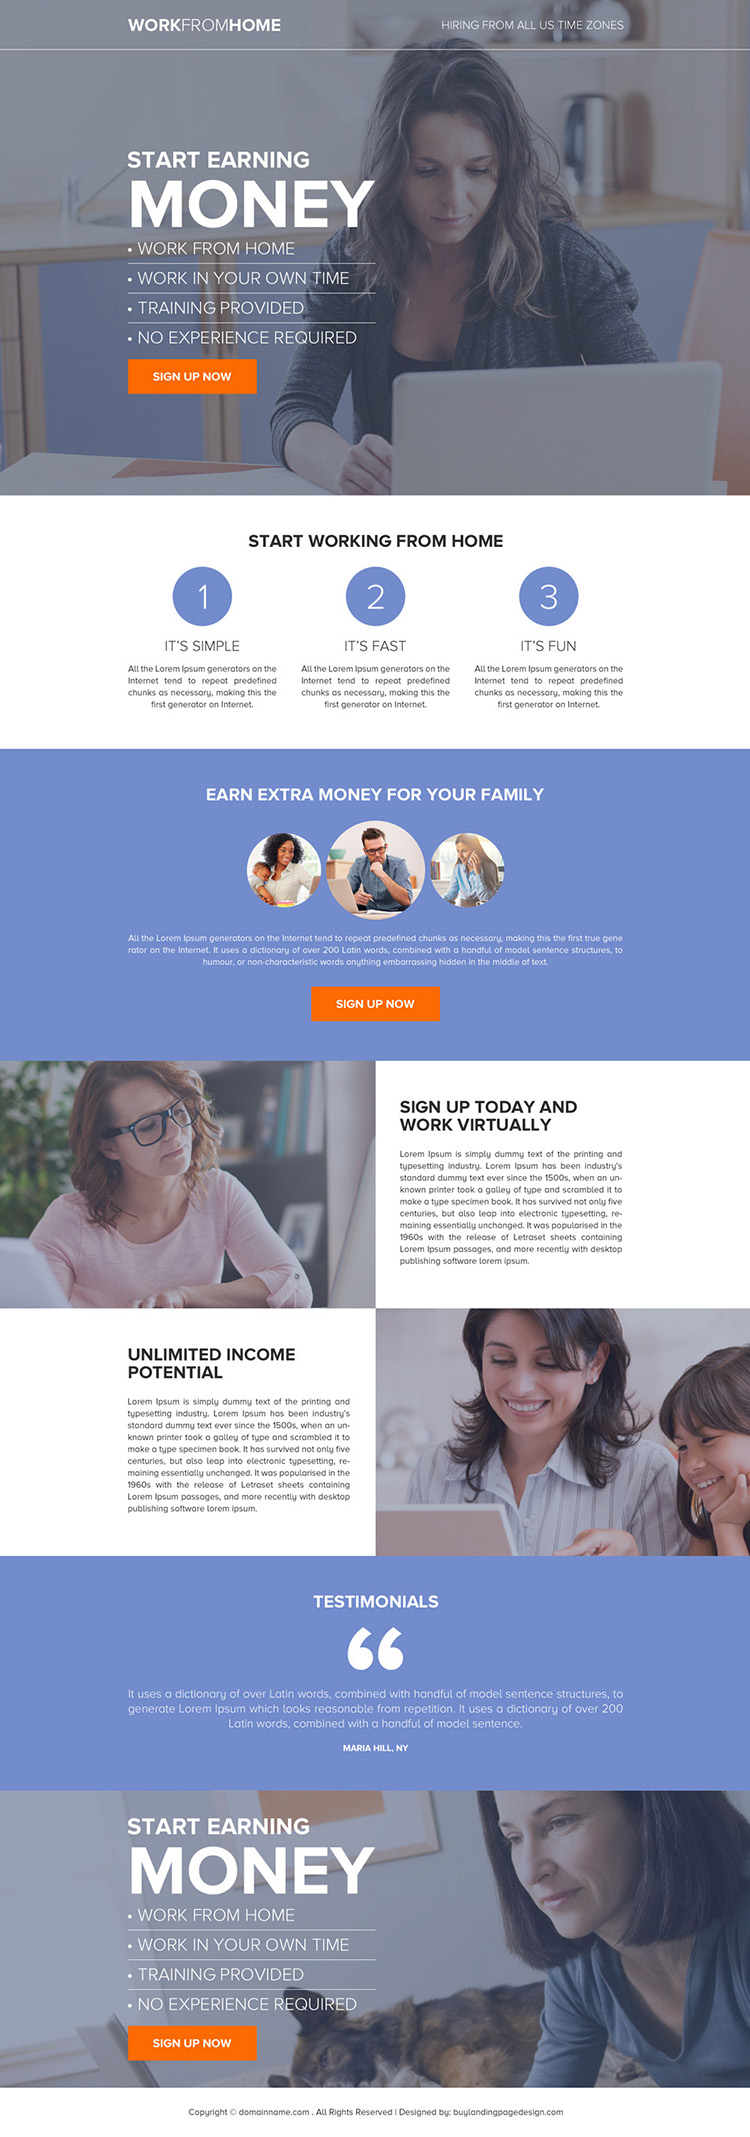 work from home business sign up capturing responsive landing page design